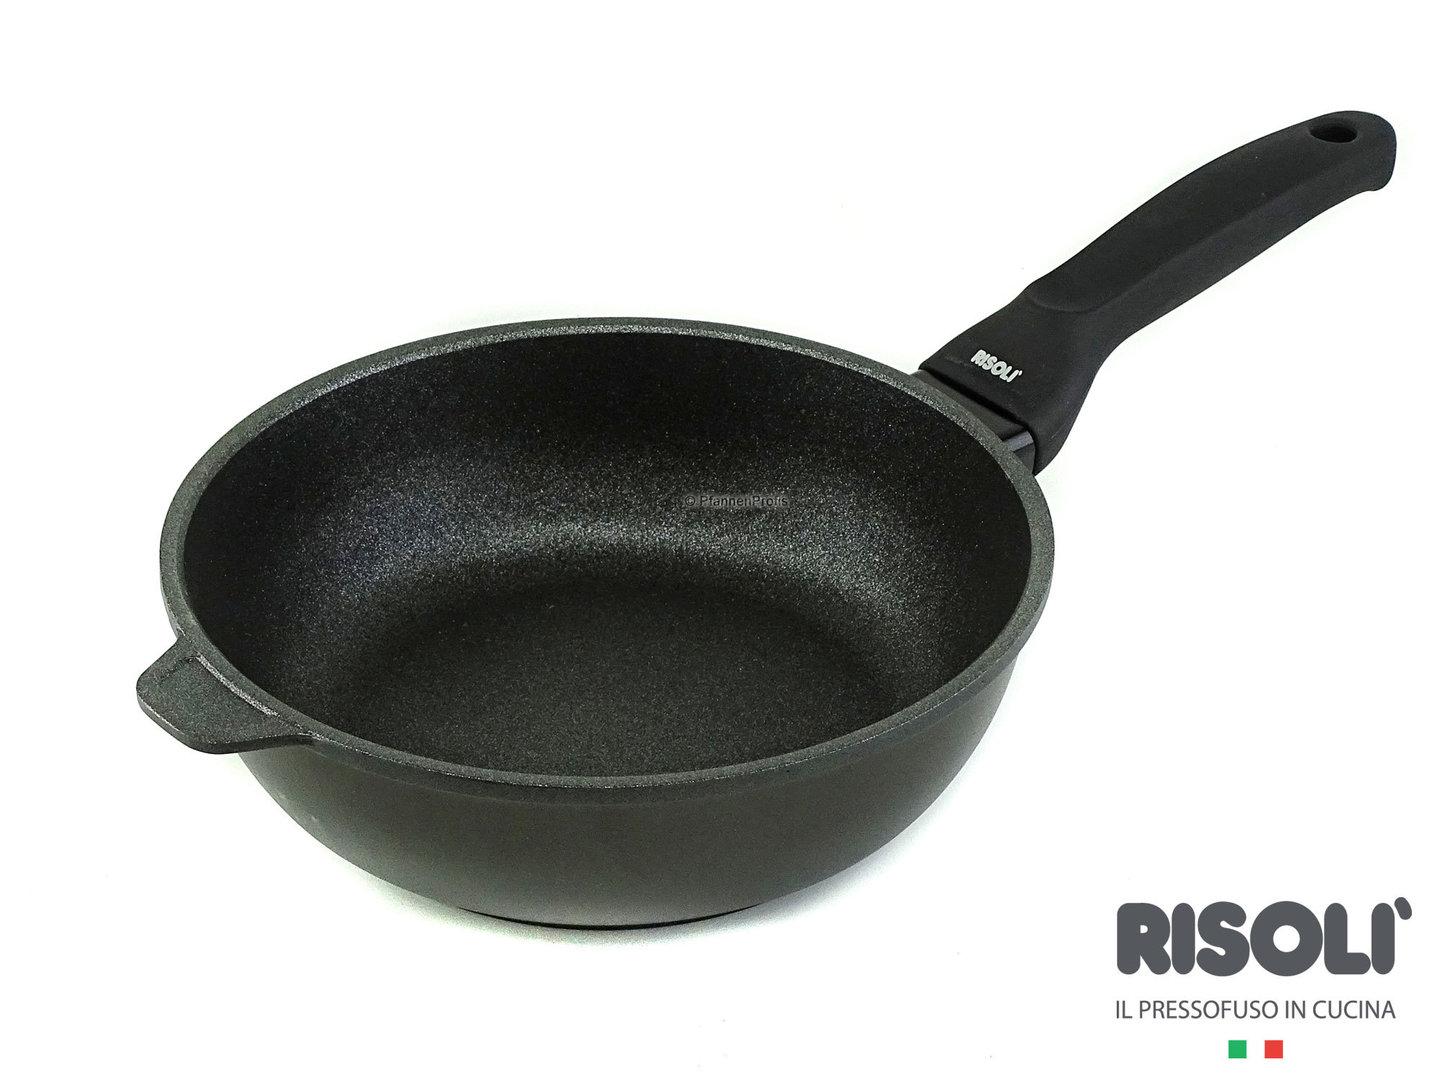 RISOLI cast aluminum deep fry pan BLACKplus induction 24 cm